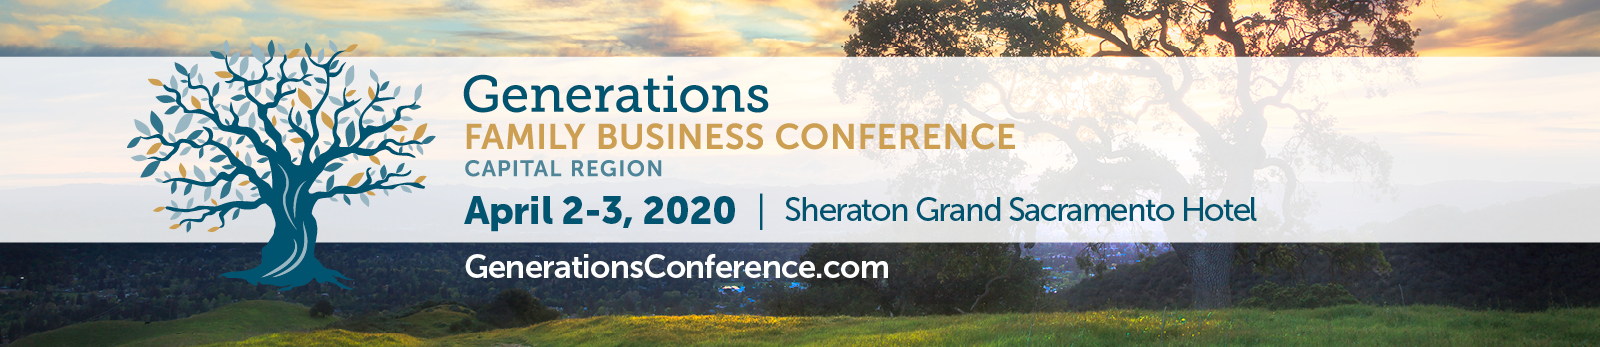 This image says 'Generations Capital Region Family Business Conference - April 2 through 3, 2019 at the Sheraton Grand Hotel'